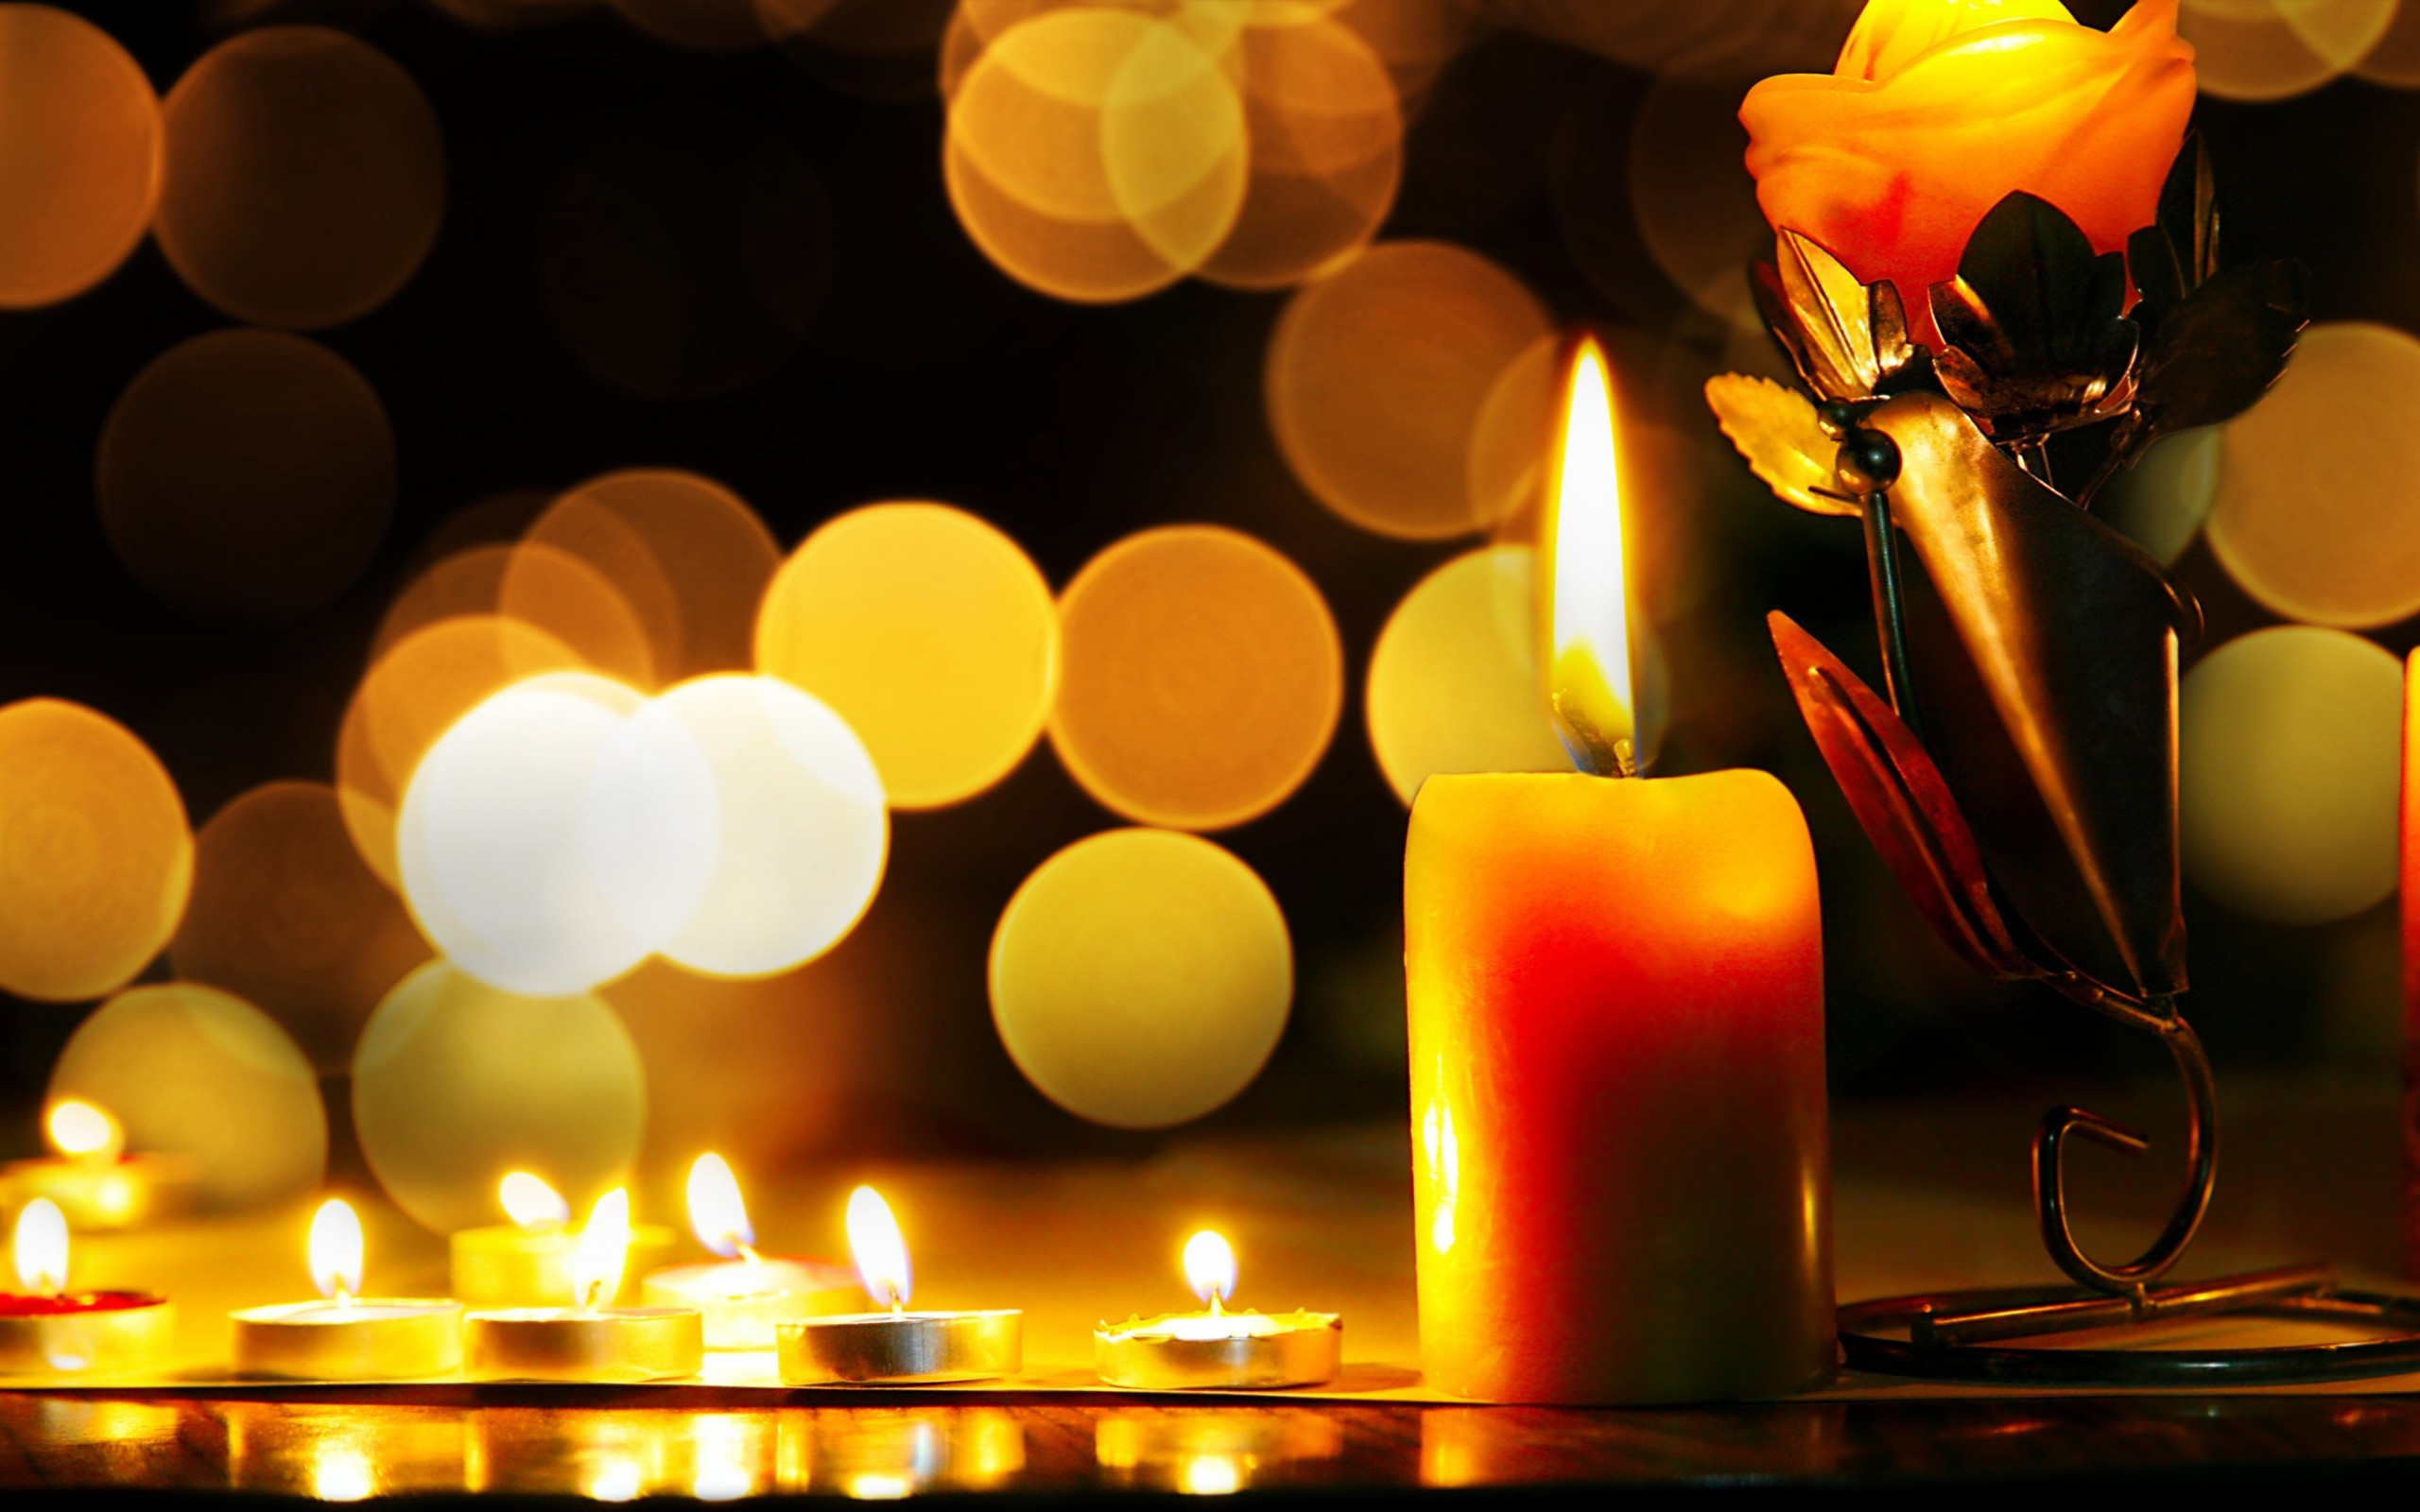 Candle Wallpaper 21